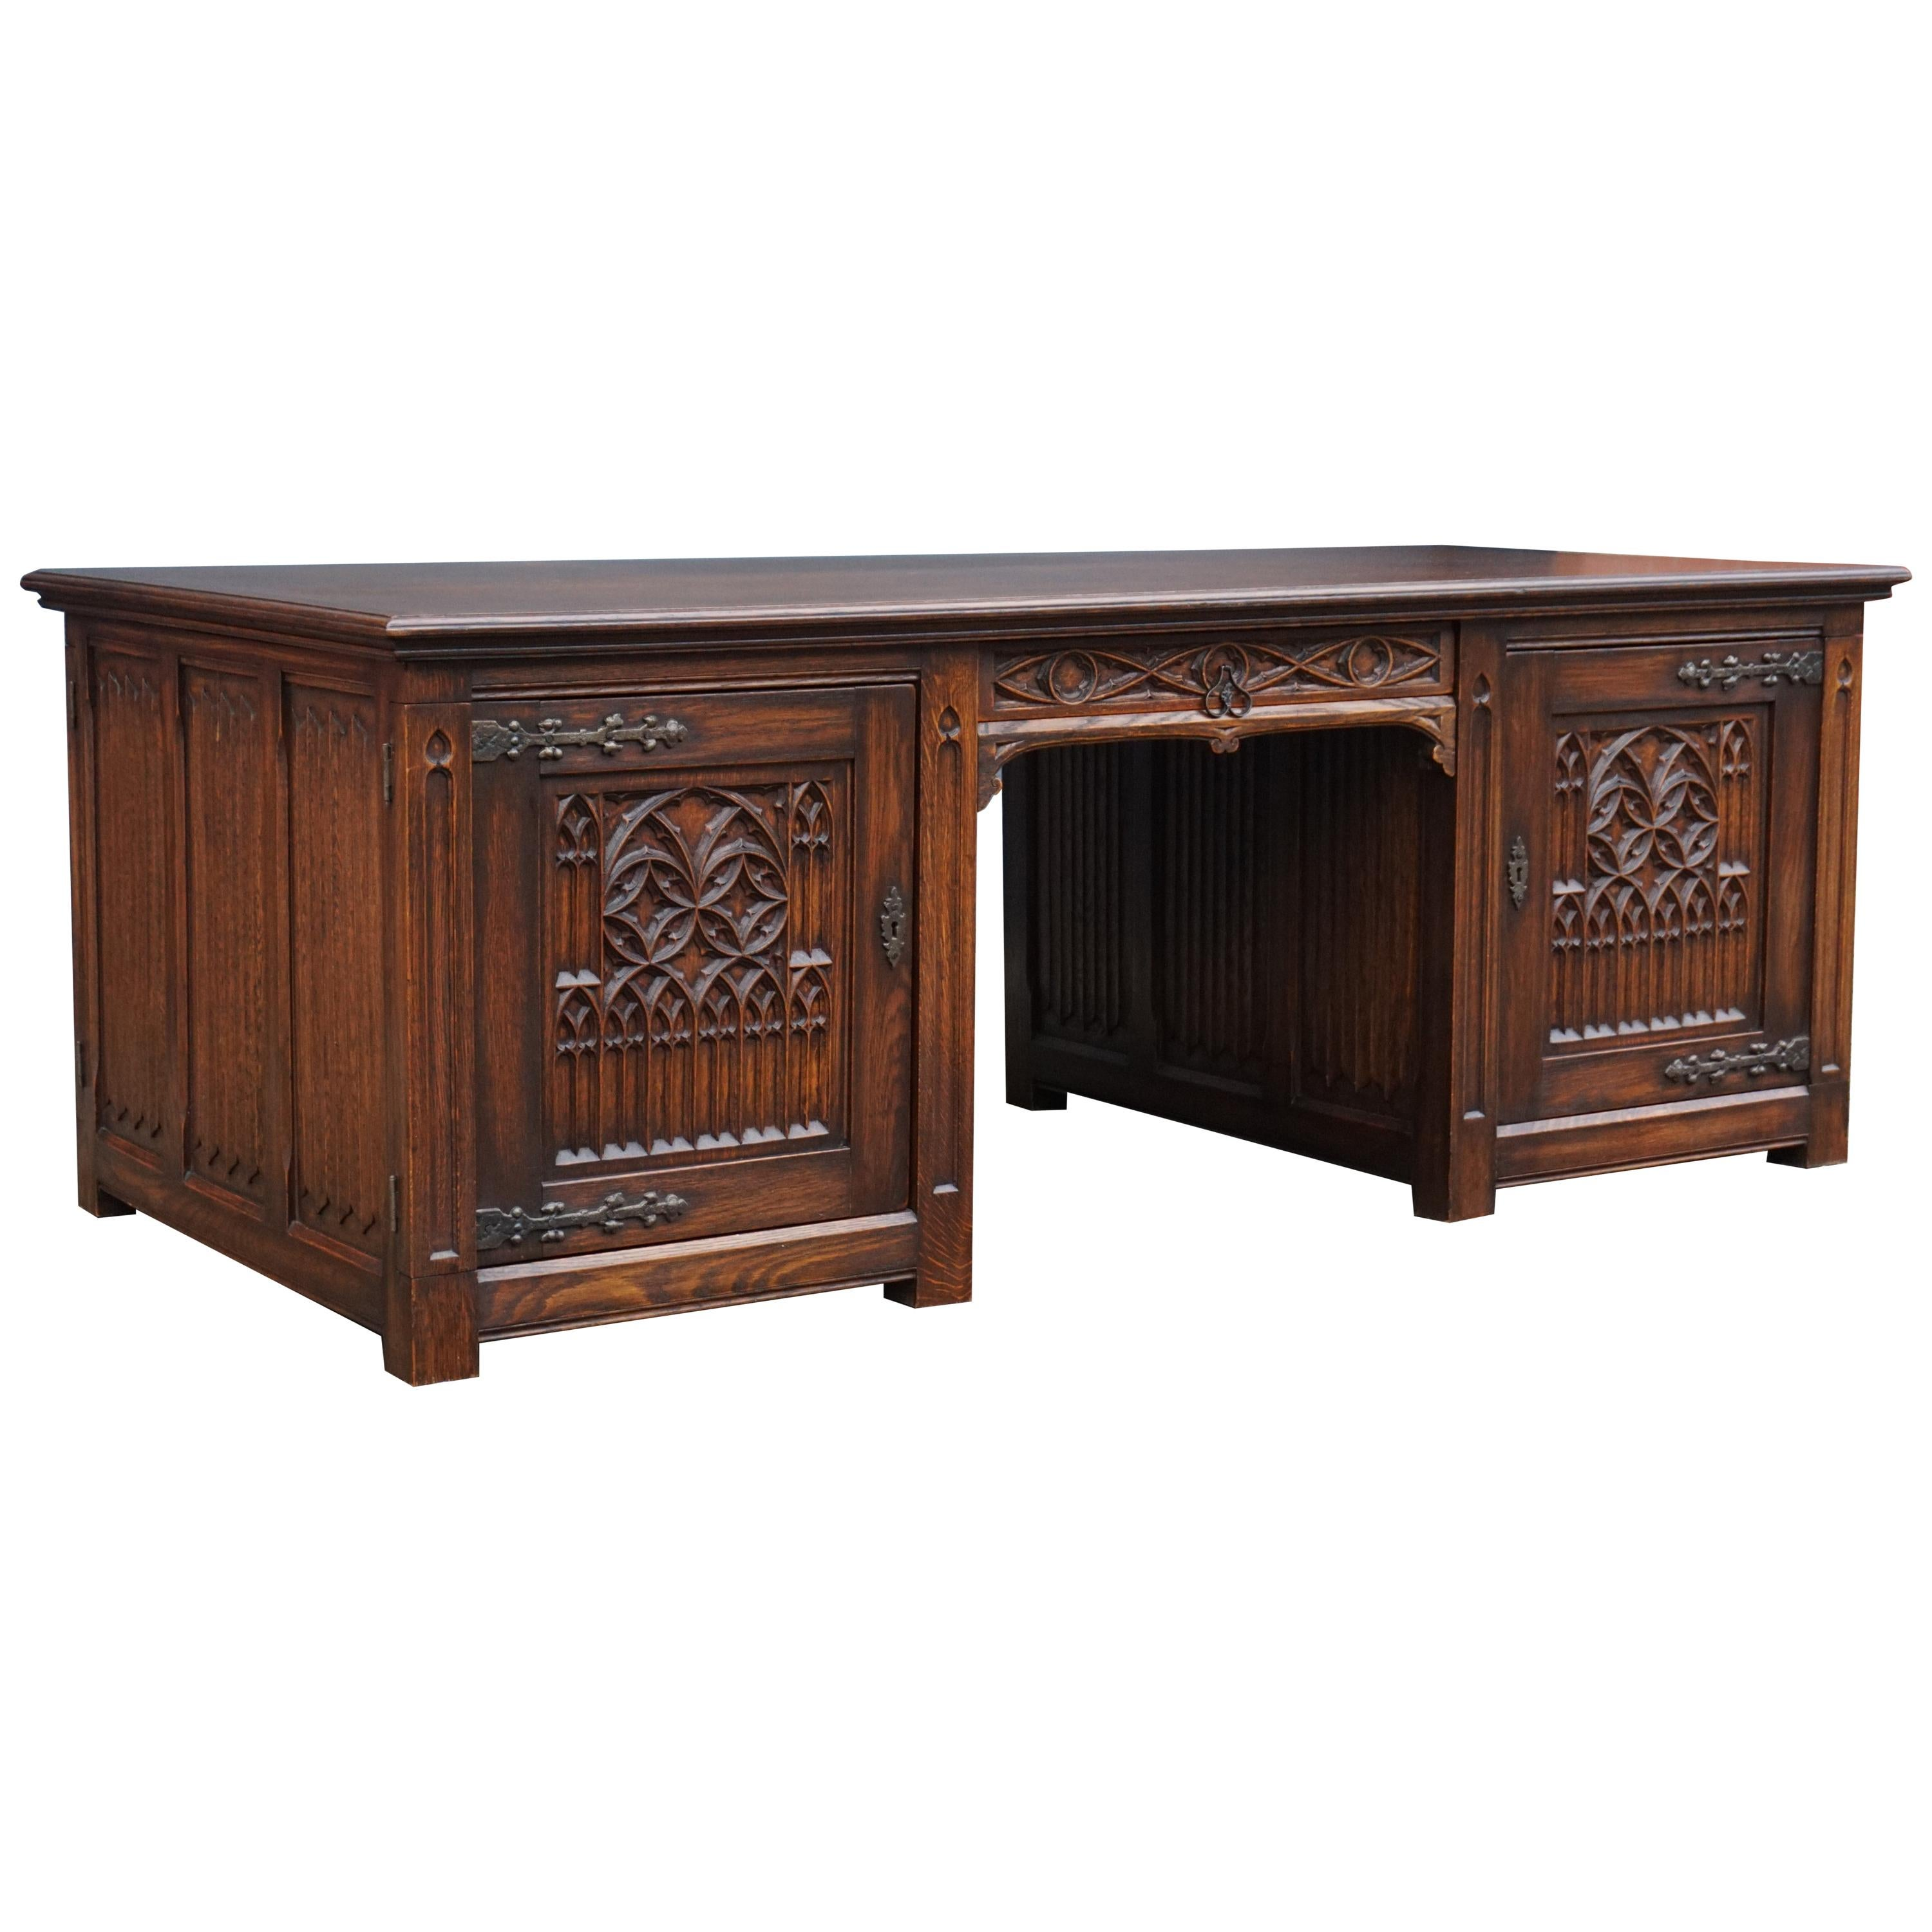 Large and Rare, Hand Carved Antique Gothic Revival Oak Partners Desk, circa 1920